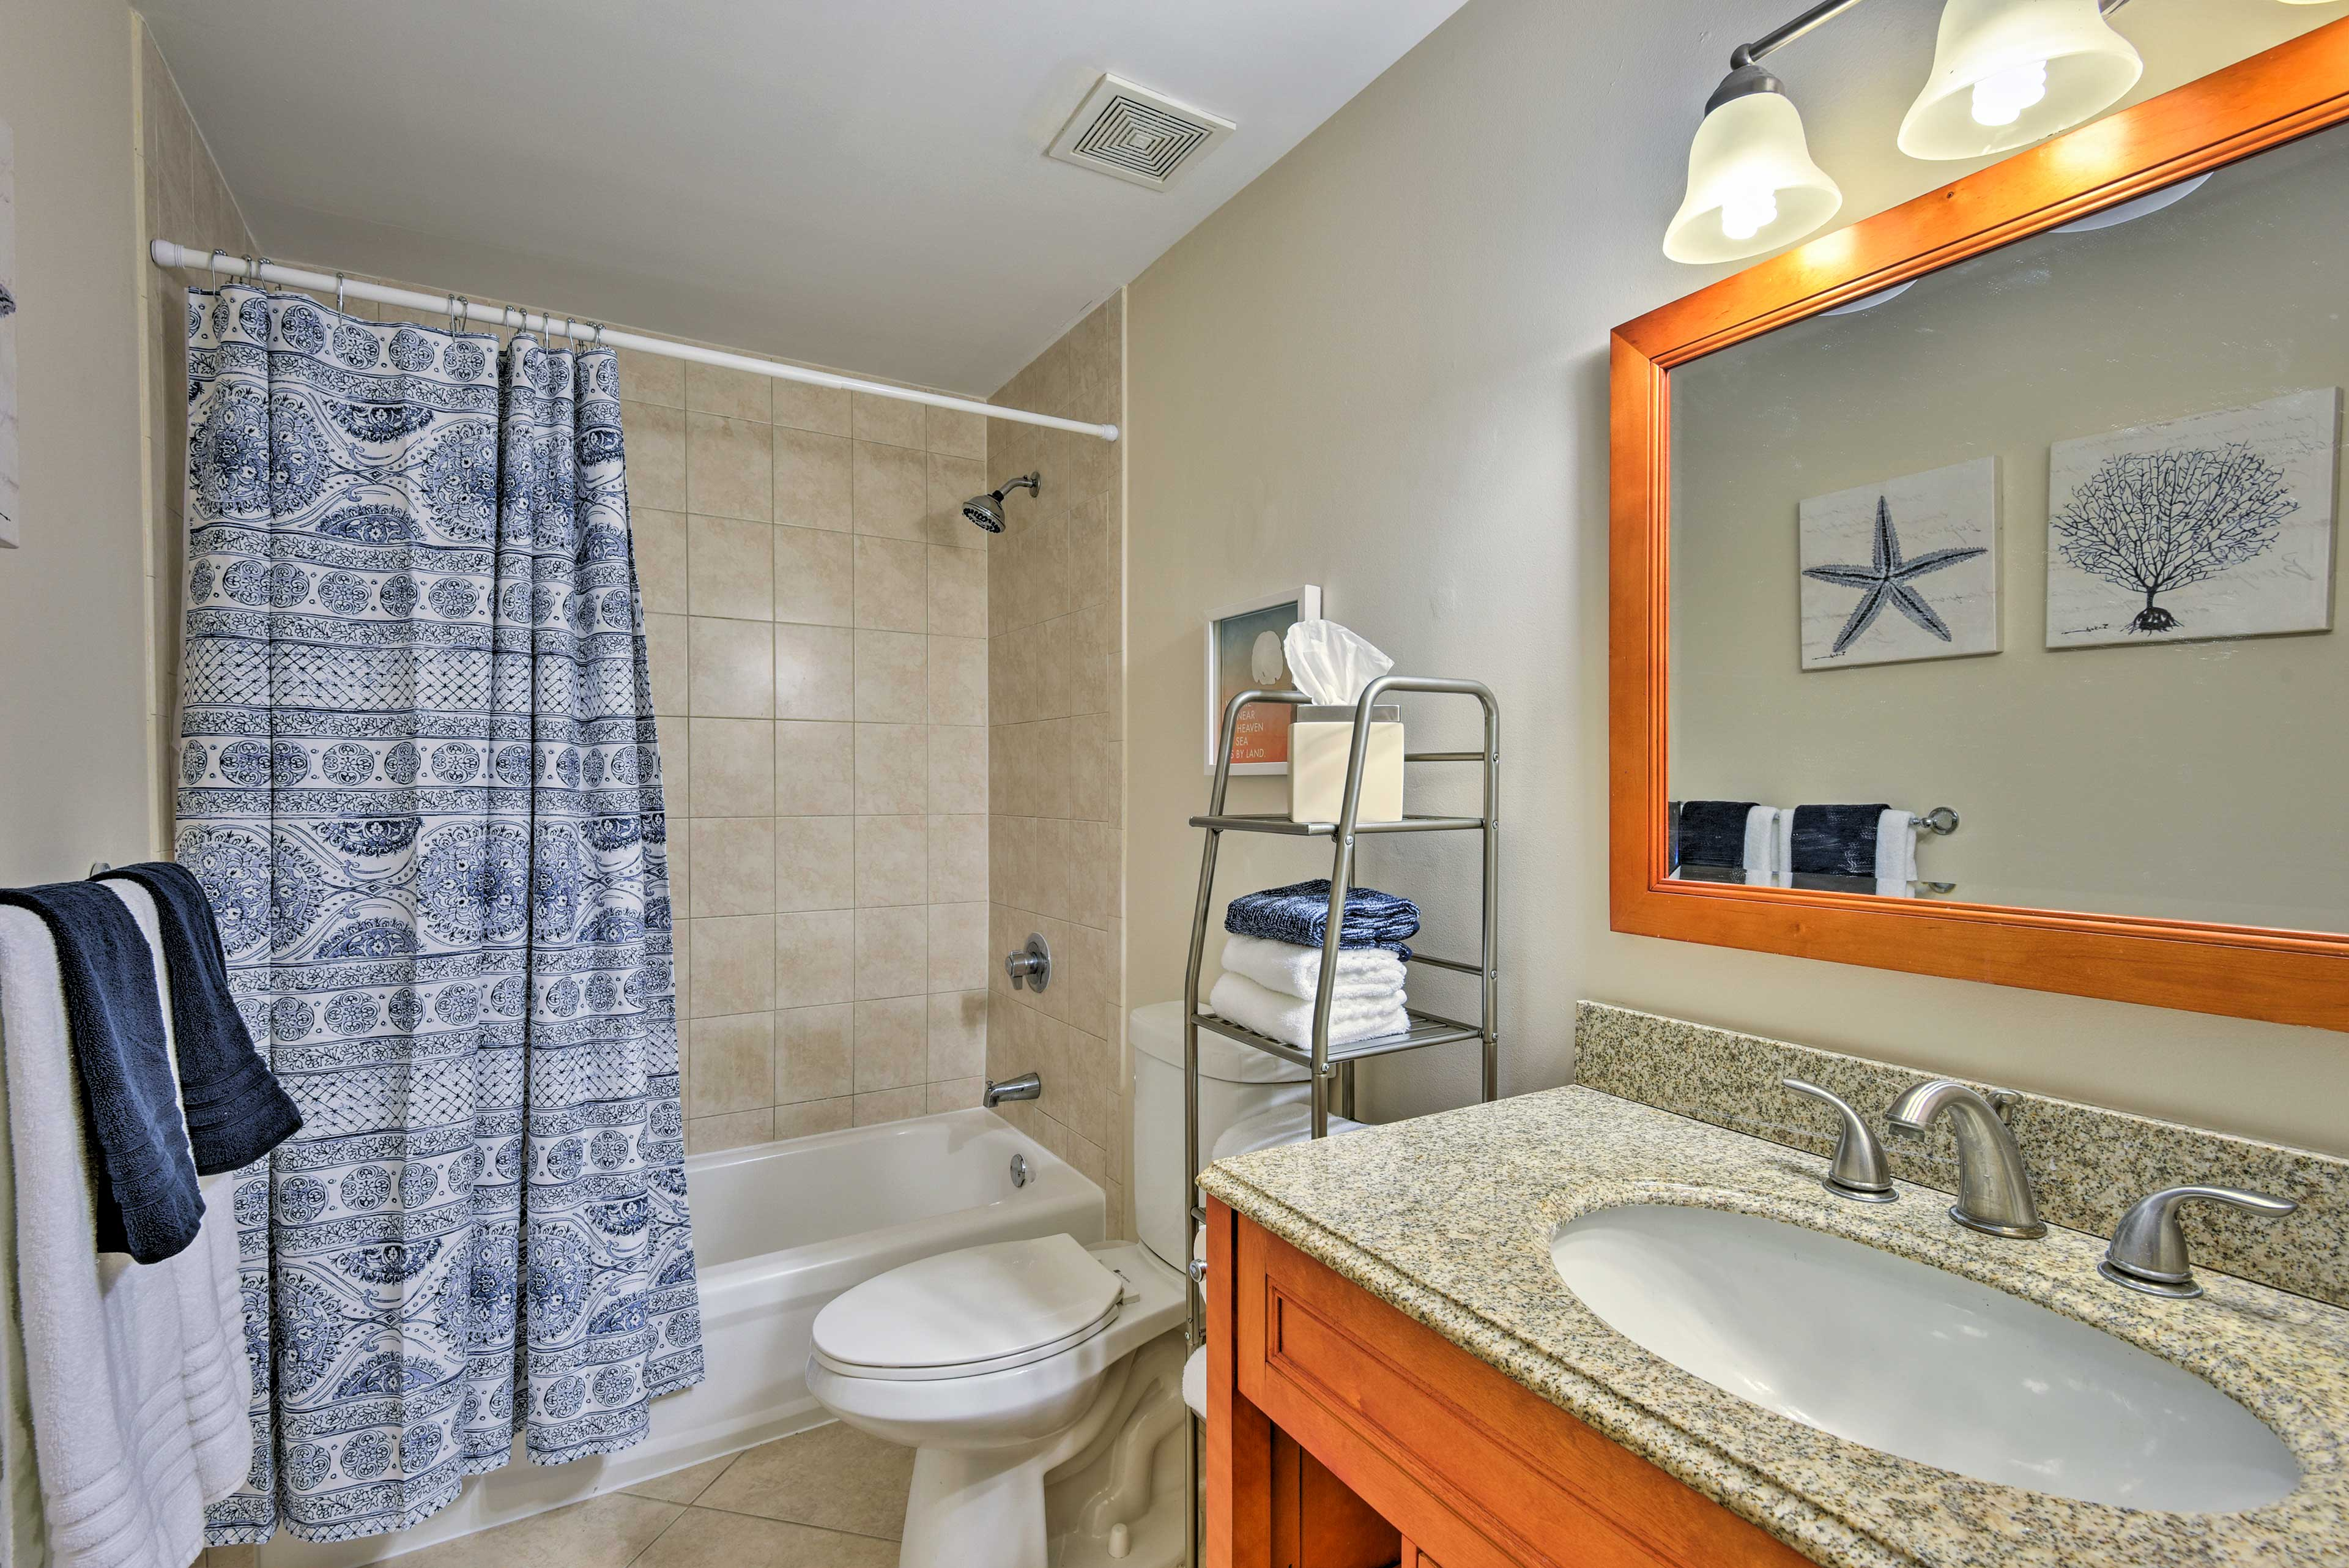 Rinse off in the shower/tub combo before you start your day.